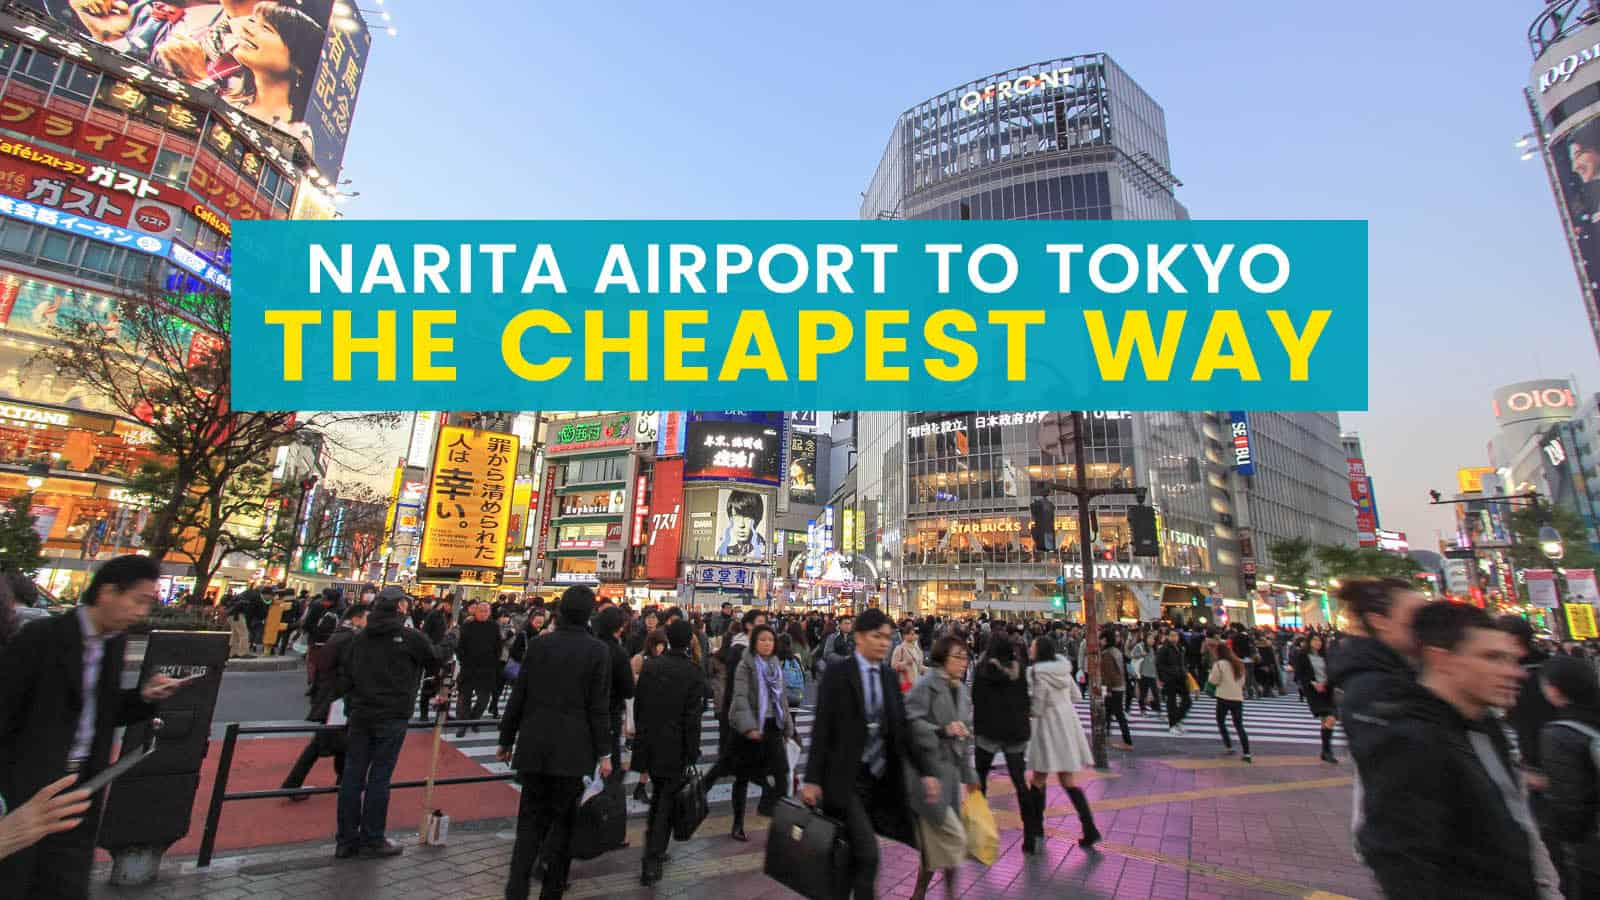 Narita Airport to Tokyo City Center the Cheapest Way